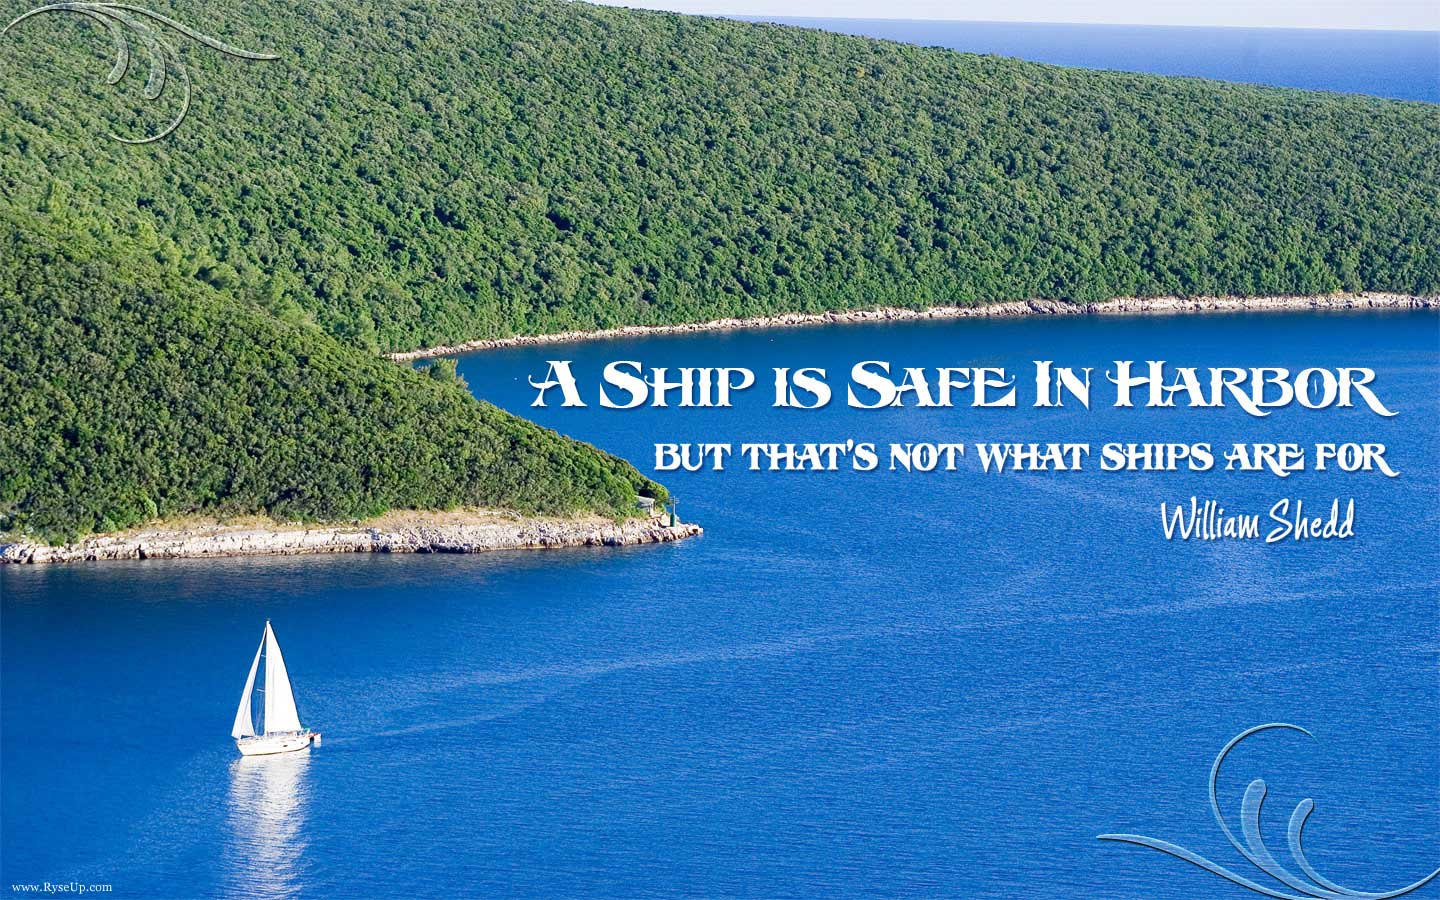 A Ship Is Safe In Harbor But That's Not What Ships Are For